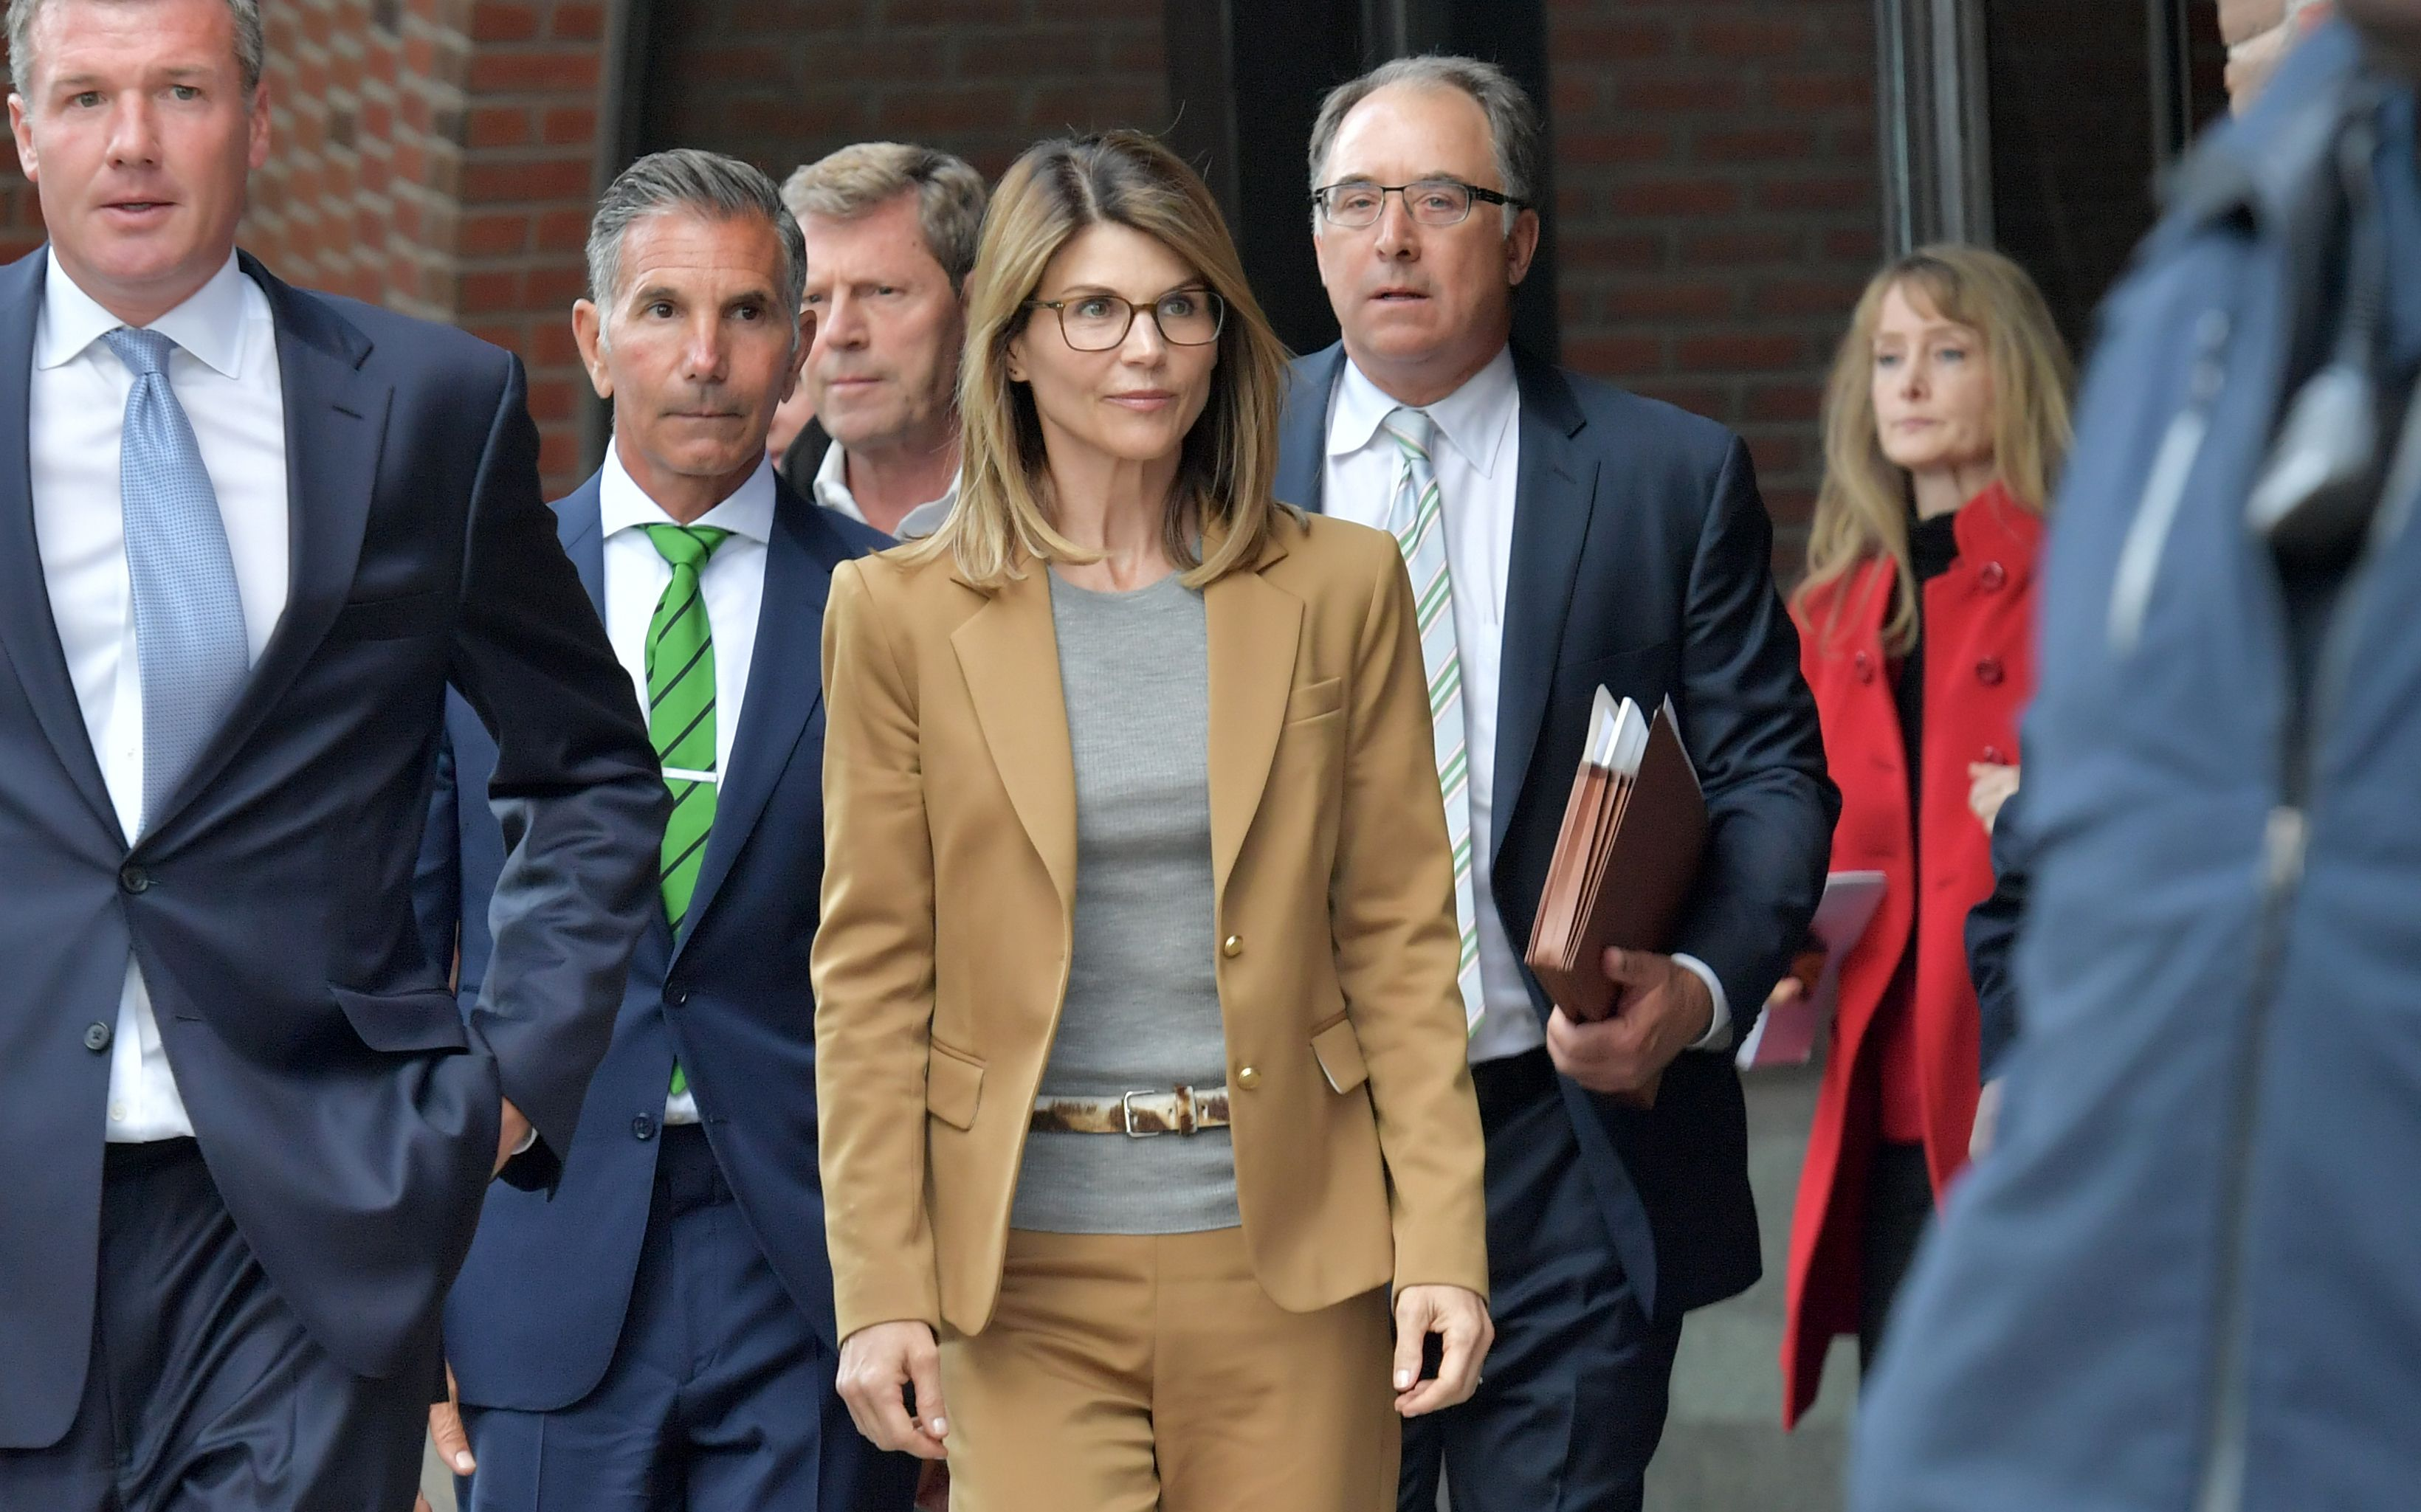 Lori Loughlin, Mossimo Giannulli Outraged at Being Called